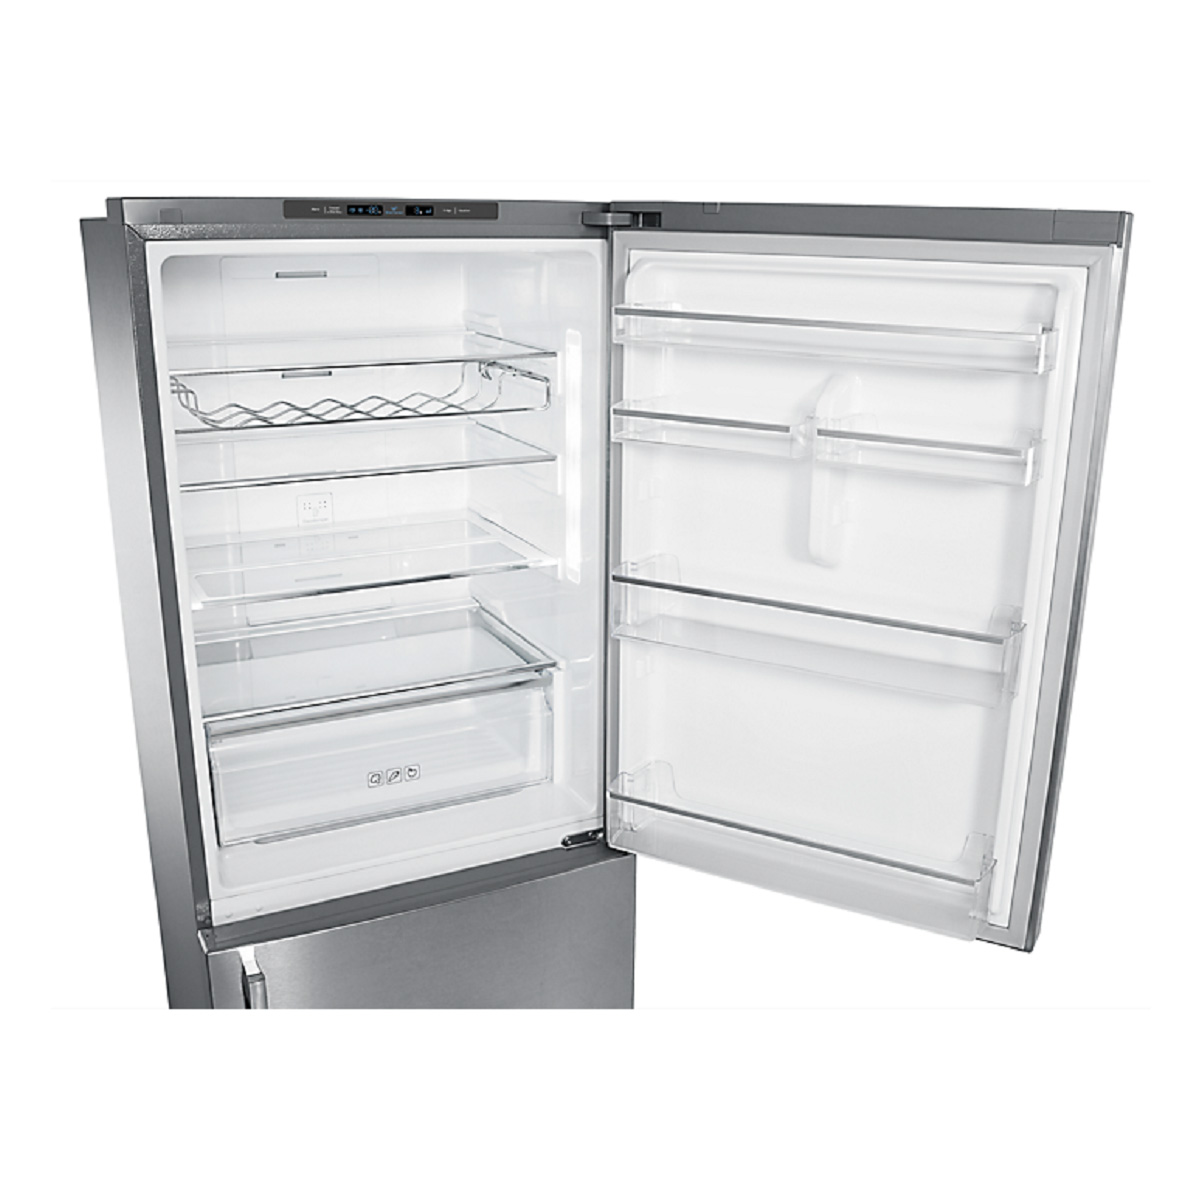 Samsung SRL458ELS 458Litres Bottom Mount Fridge 35958